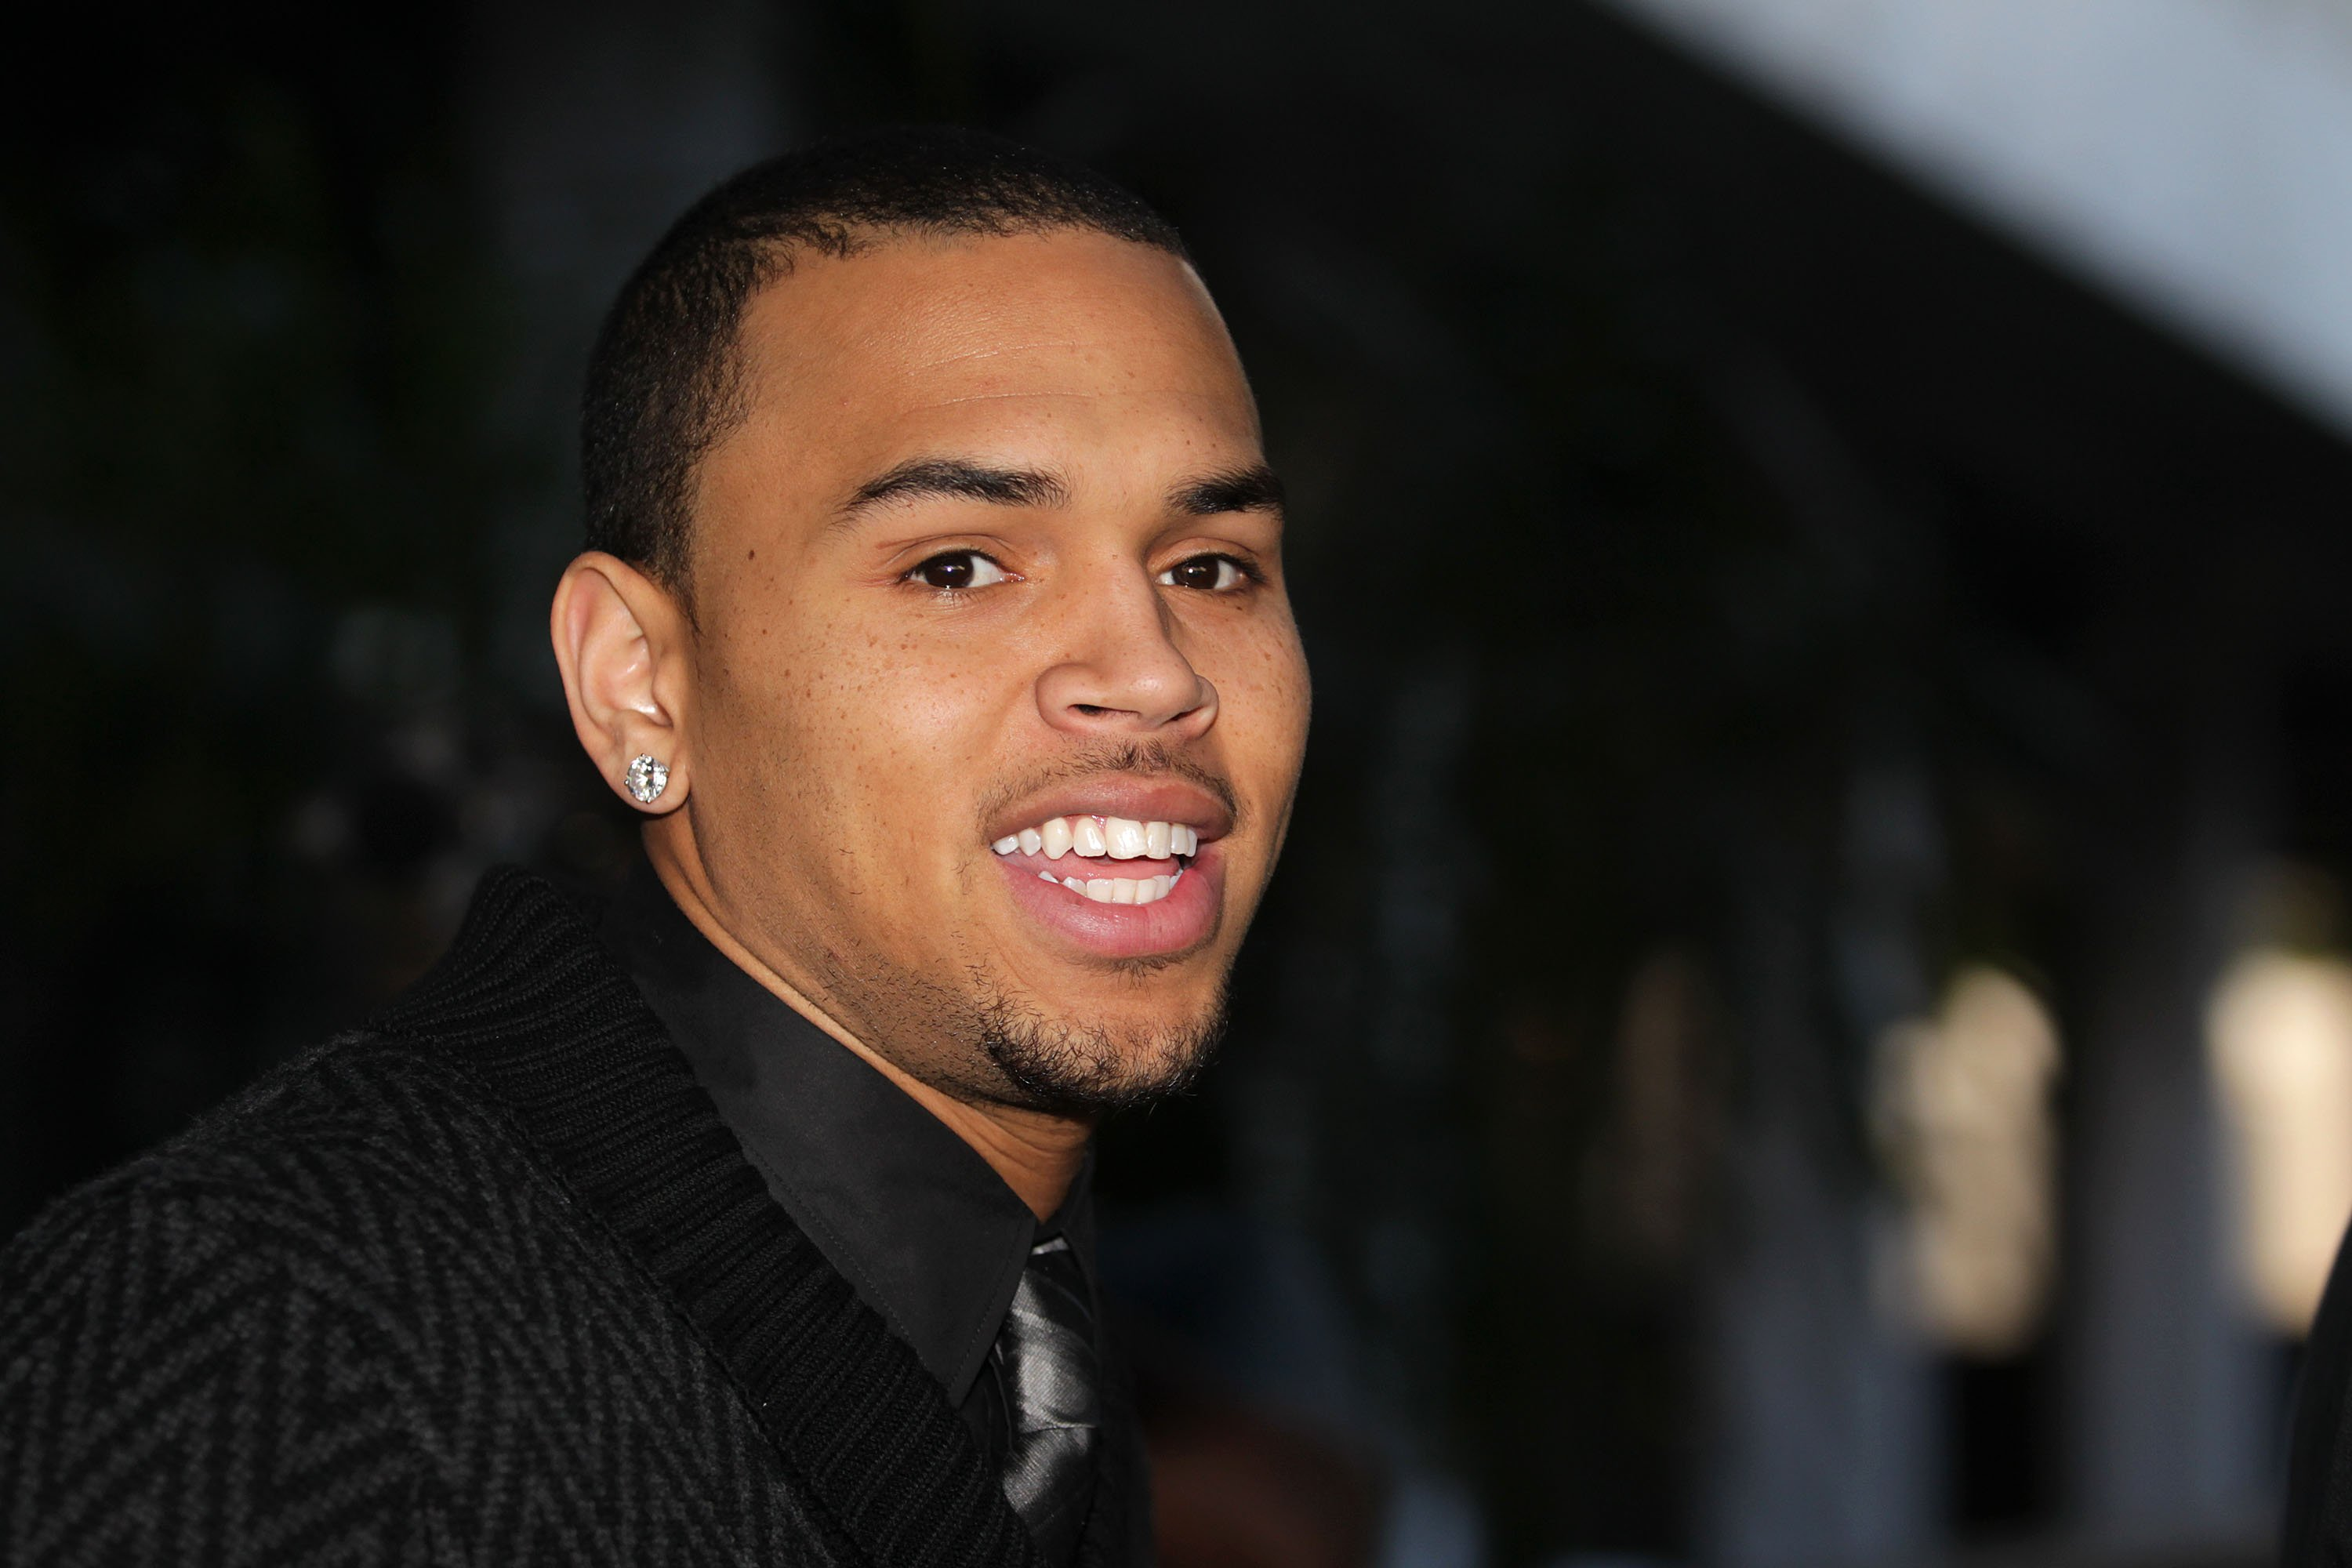 Chris Brown on January 28, 2011 in Los Angeles, California   Photo: Getty Images